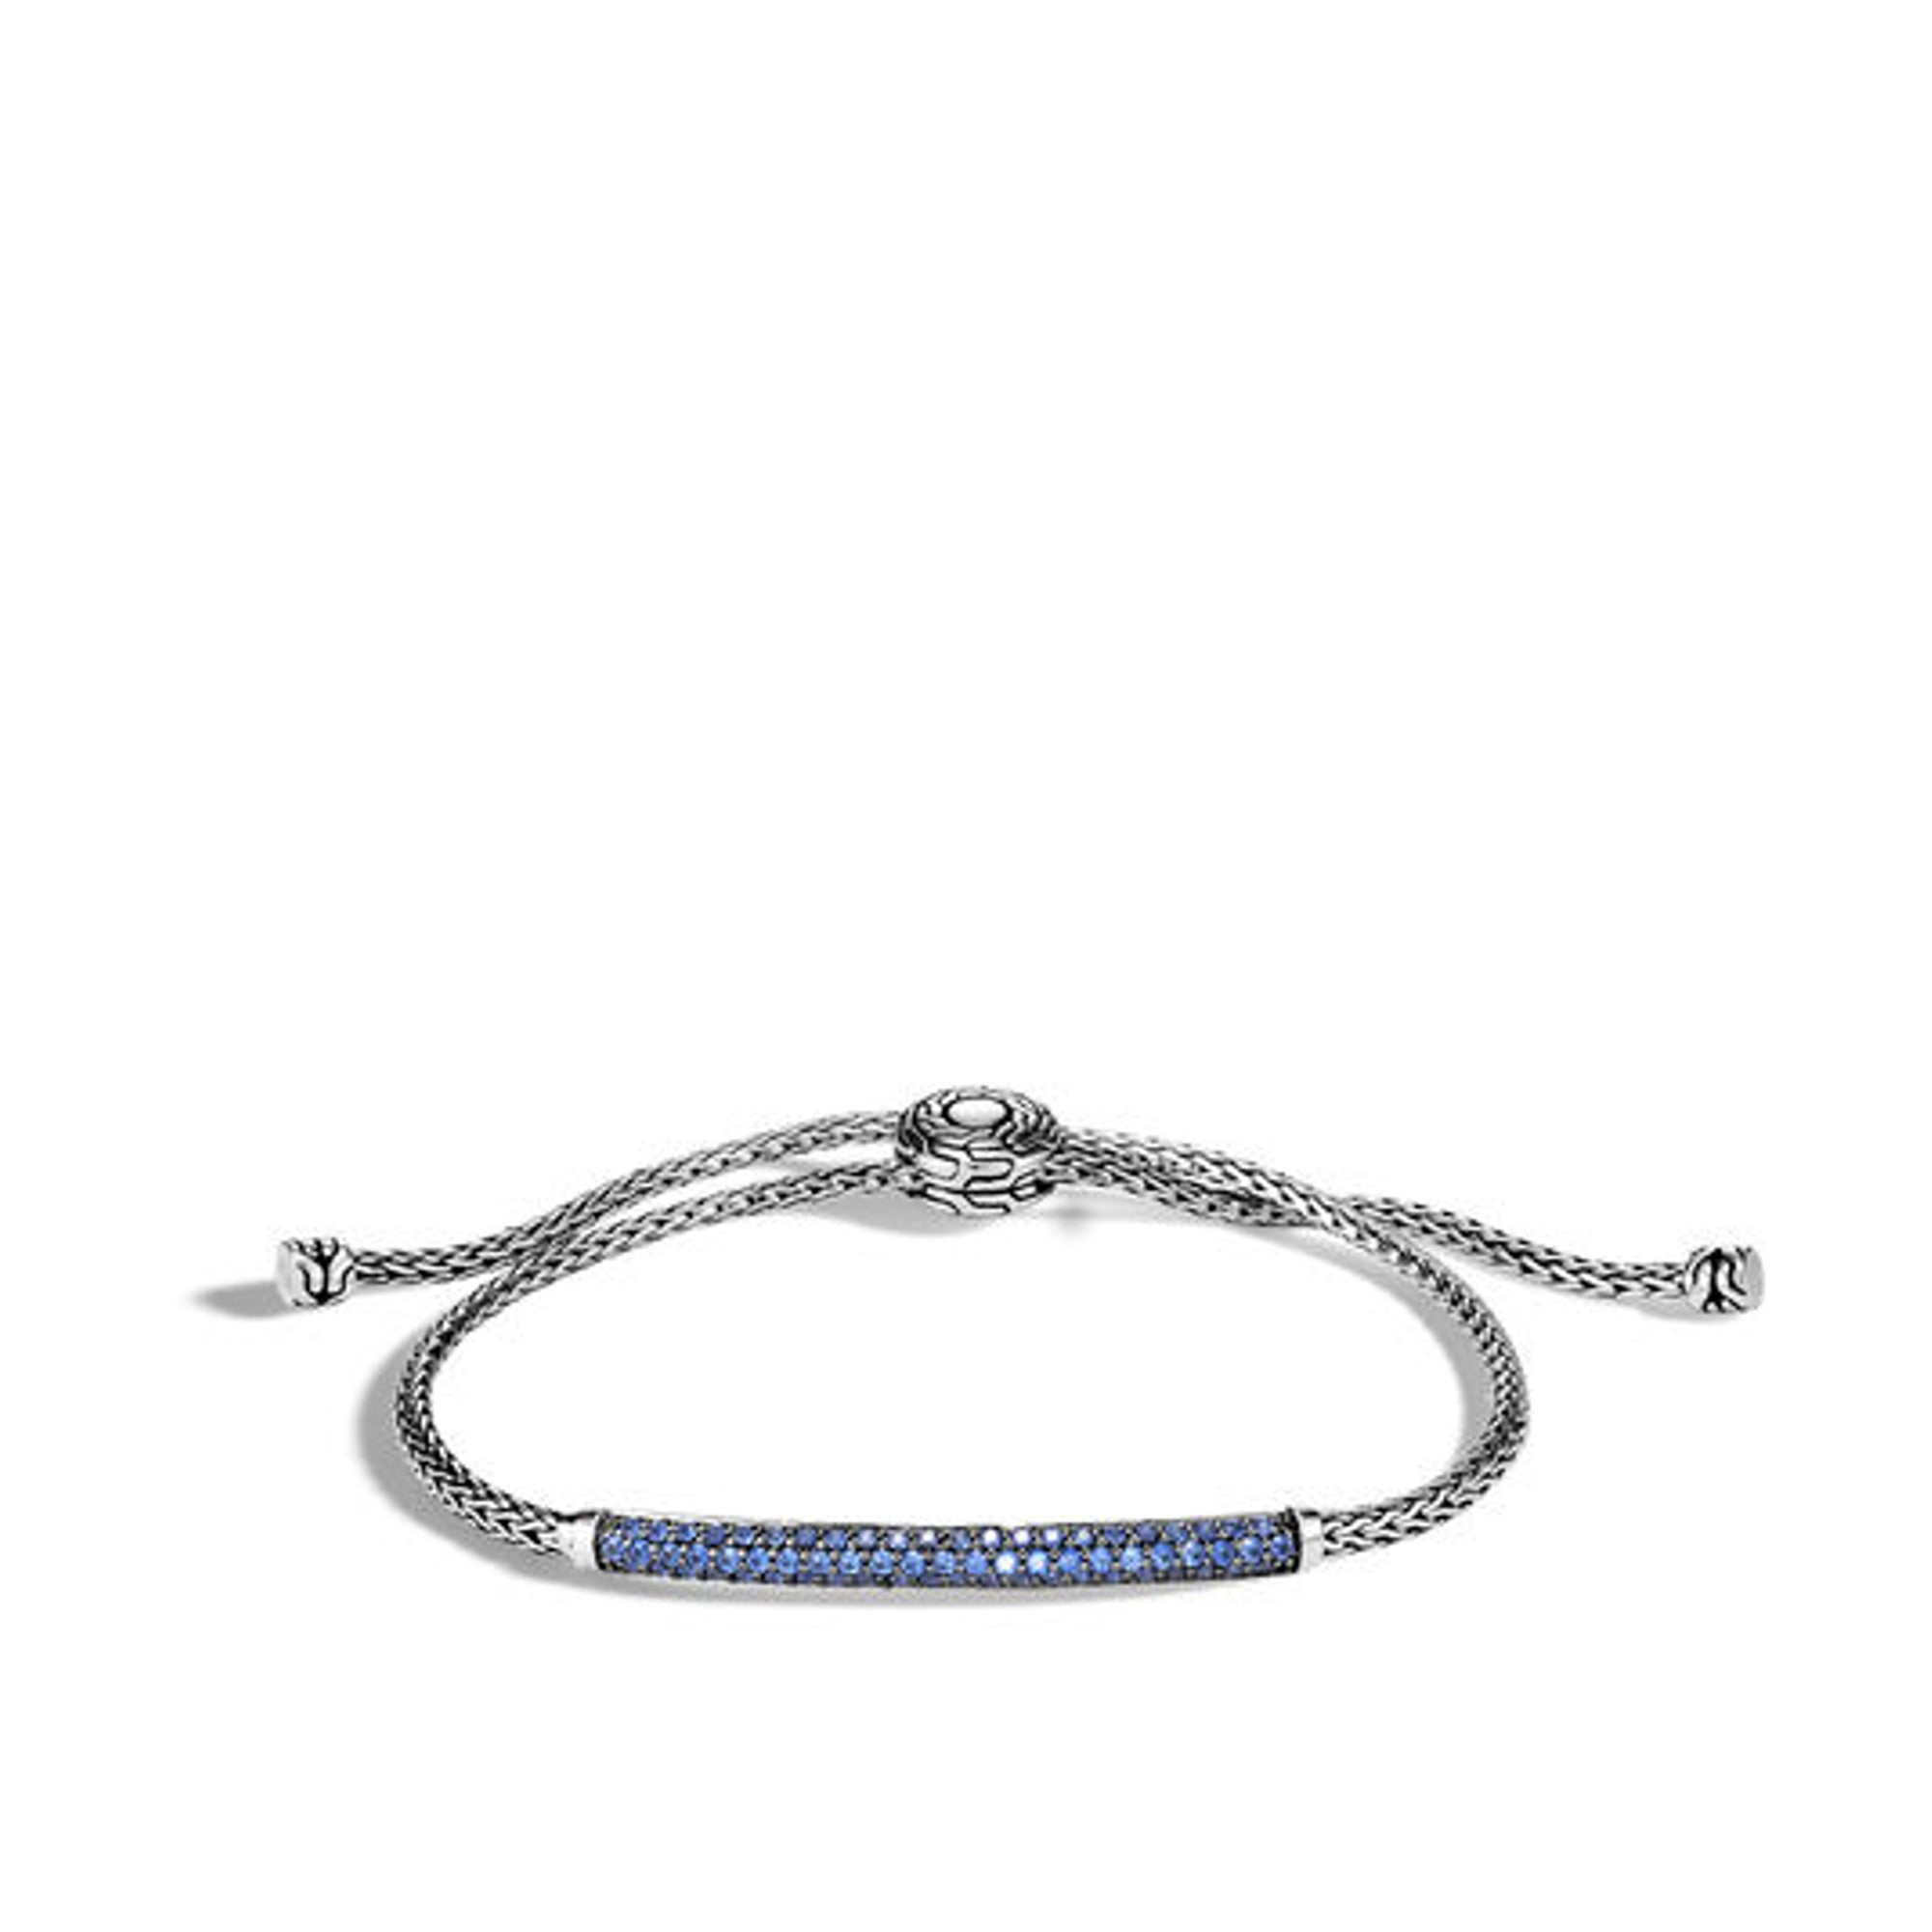 Women's Classic Chain Pull Through Bracelet with Blue Sapphire